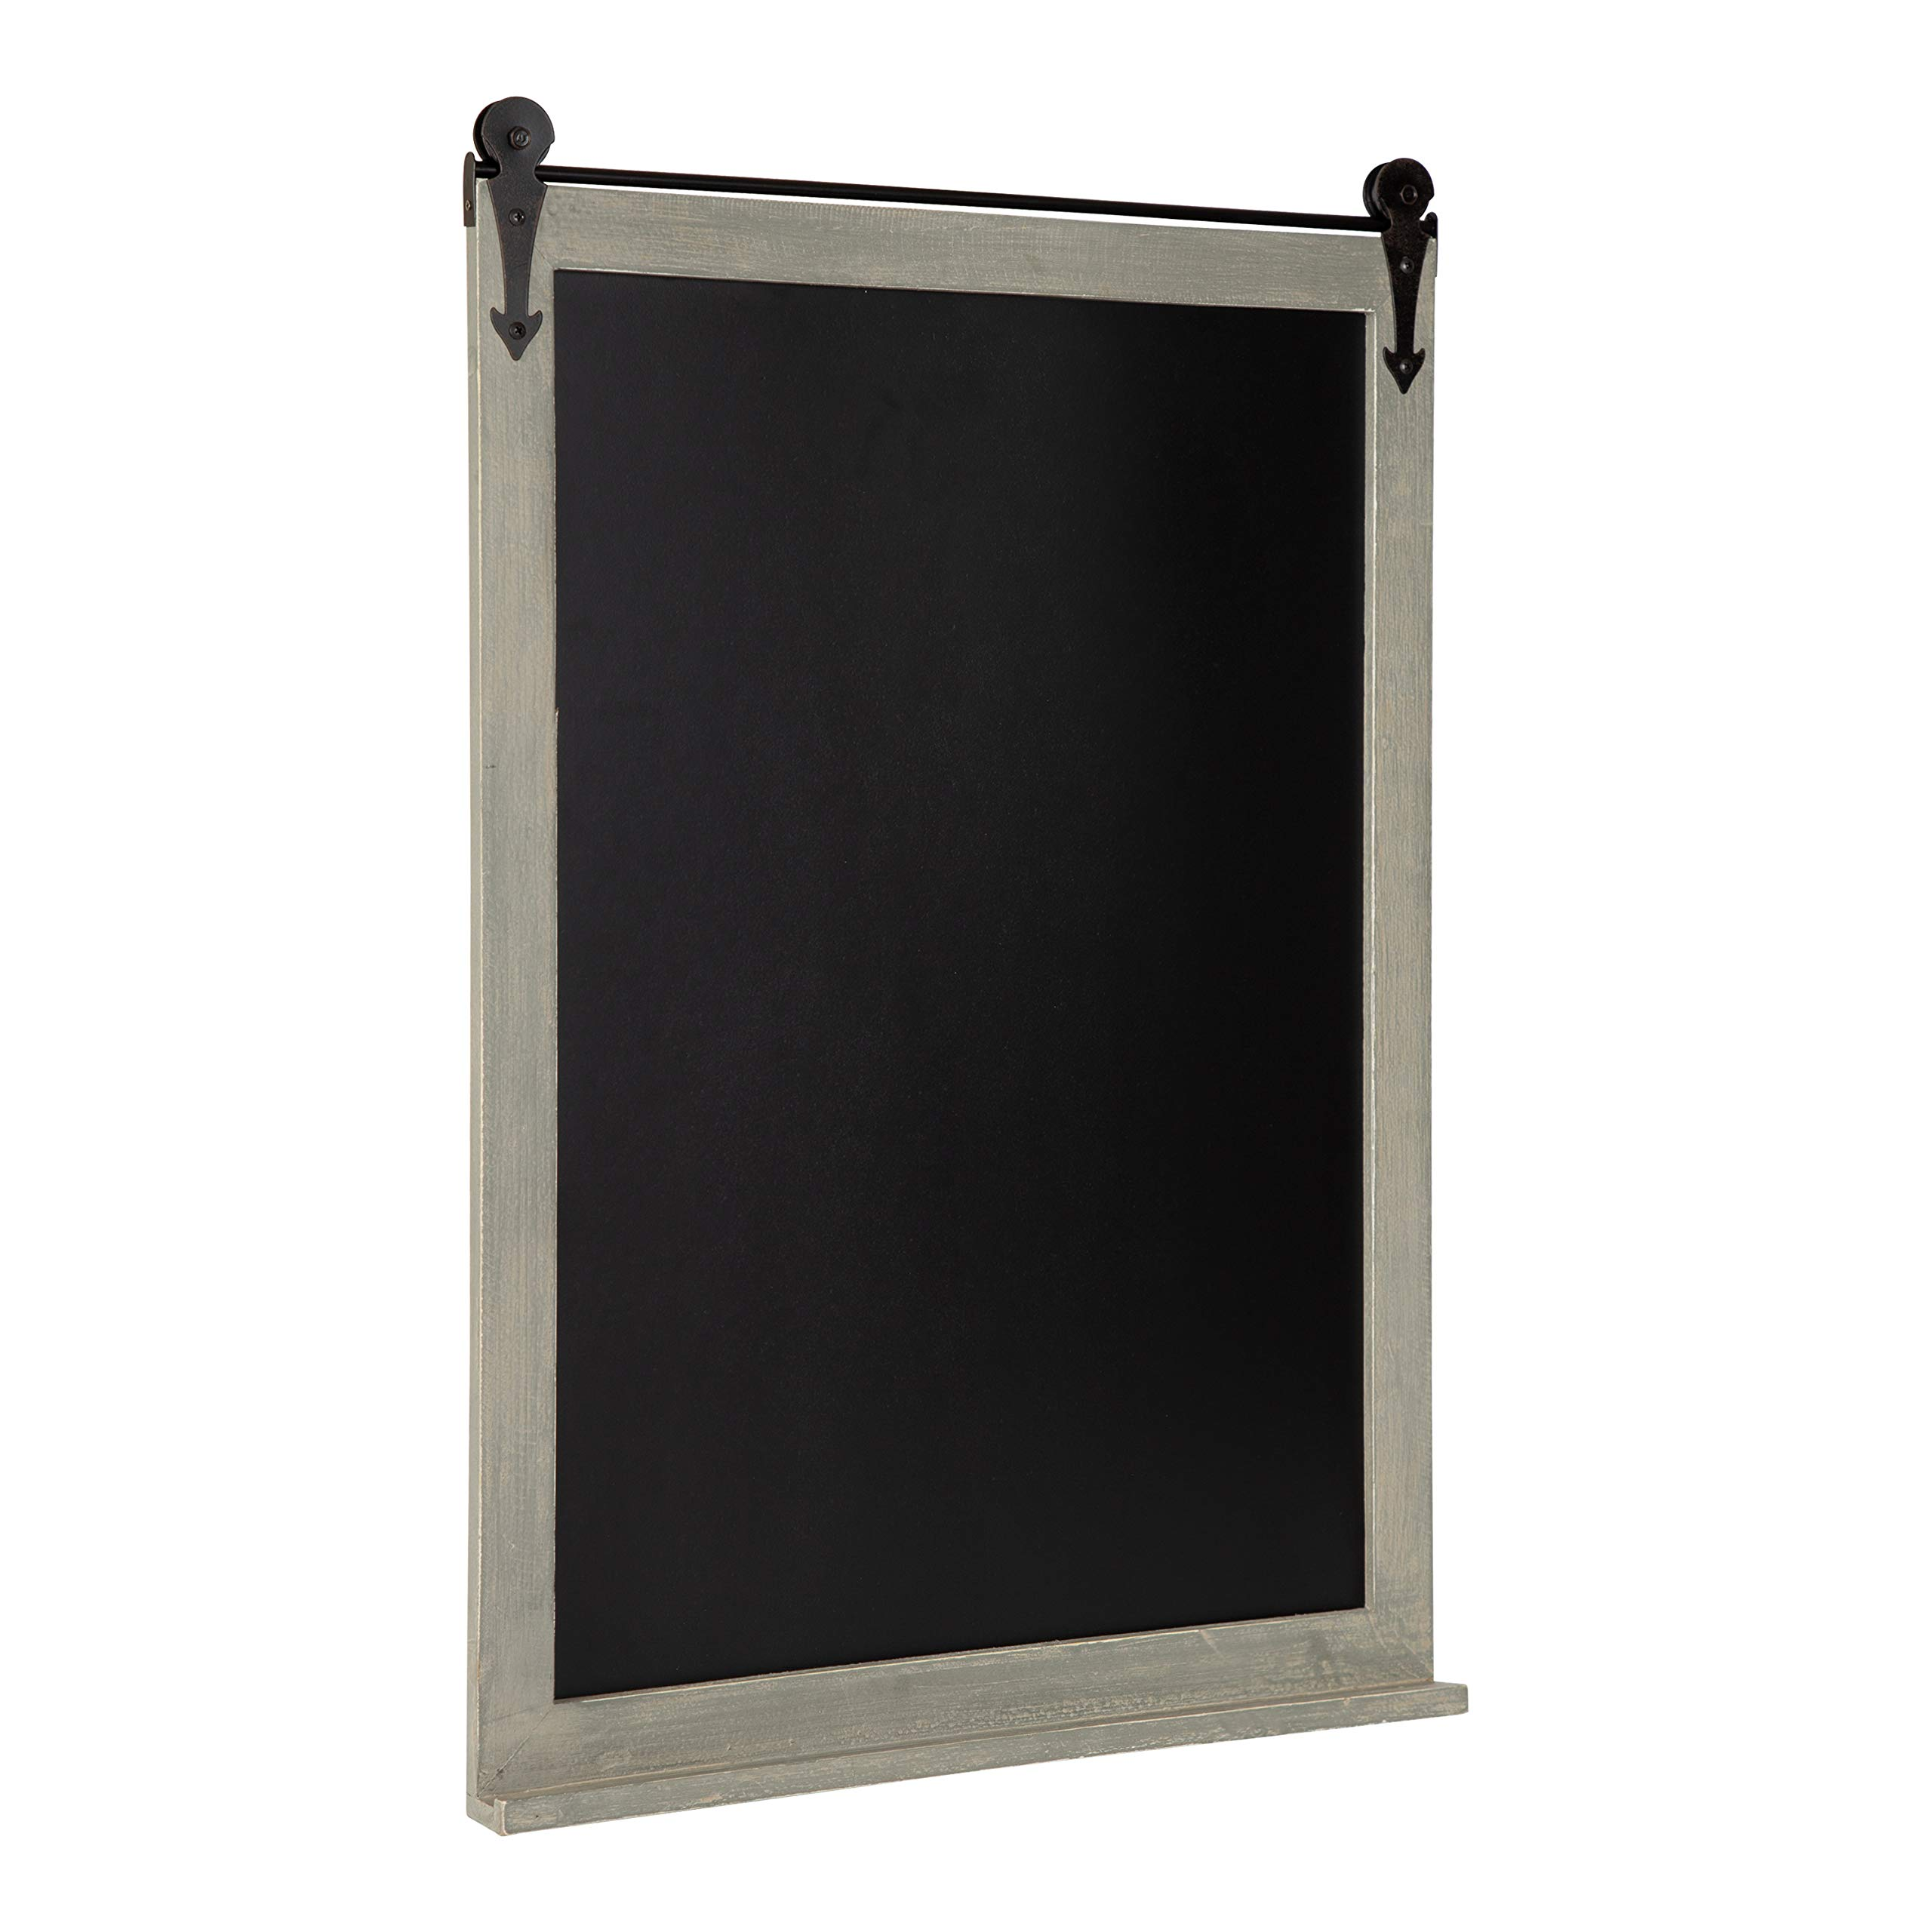 Kate and Laurel Cates Modern Farmhouse Barn Door Wood Framed Chalkboard, Rustic Gray by Kate and Laurel